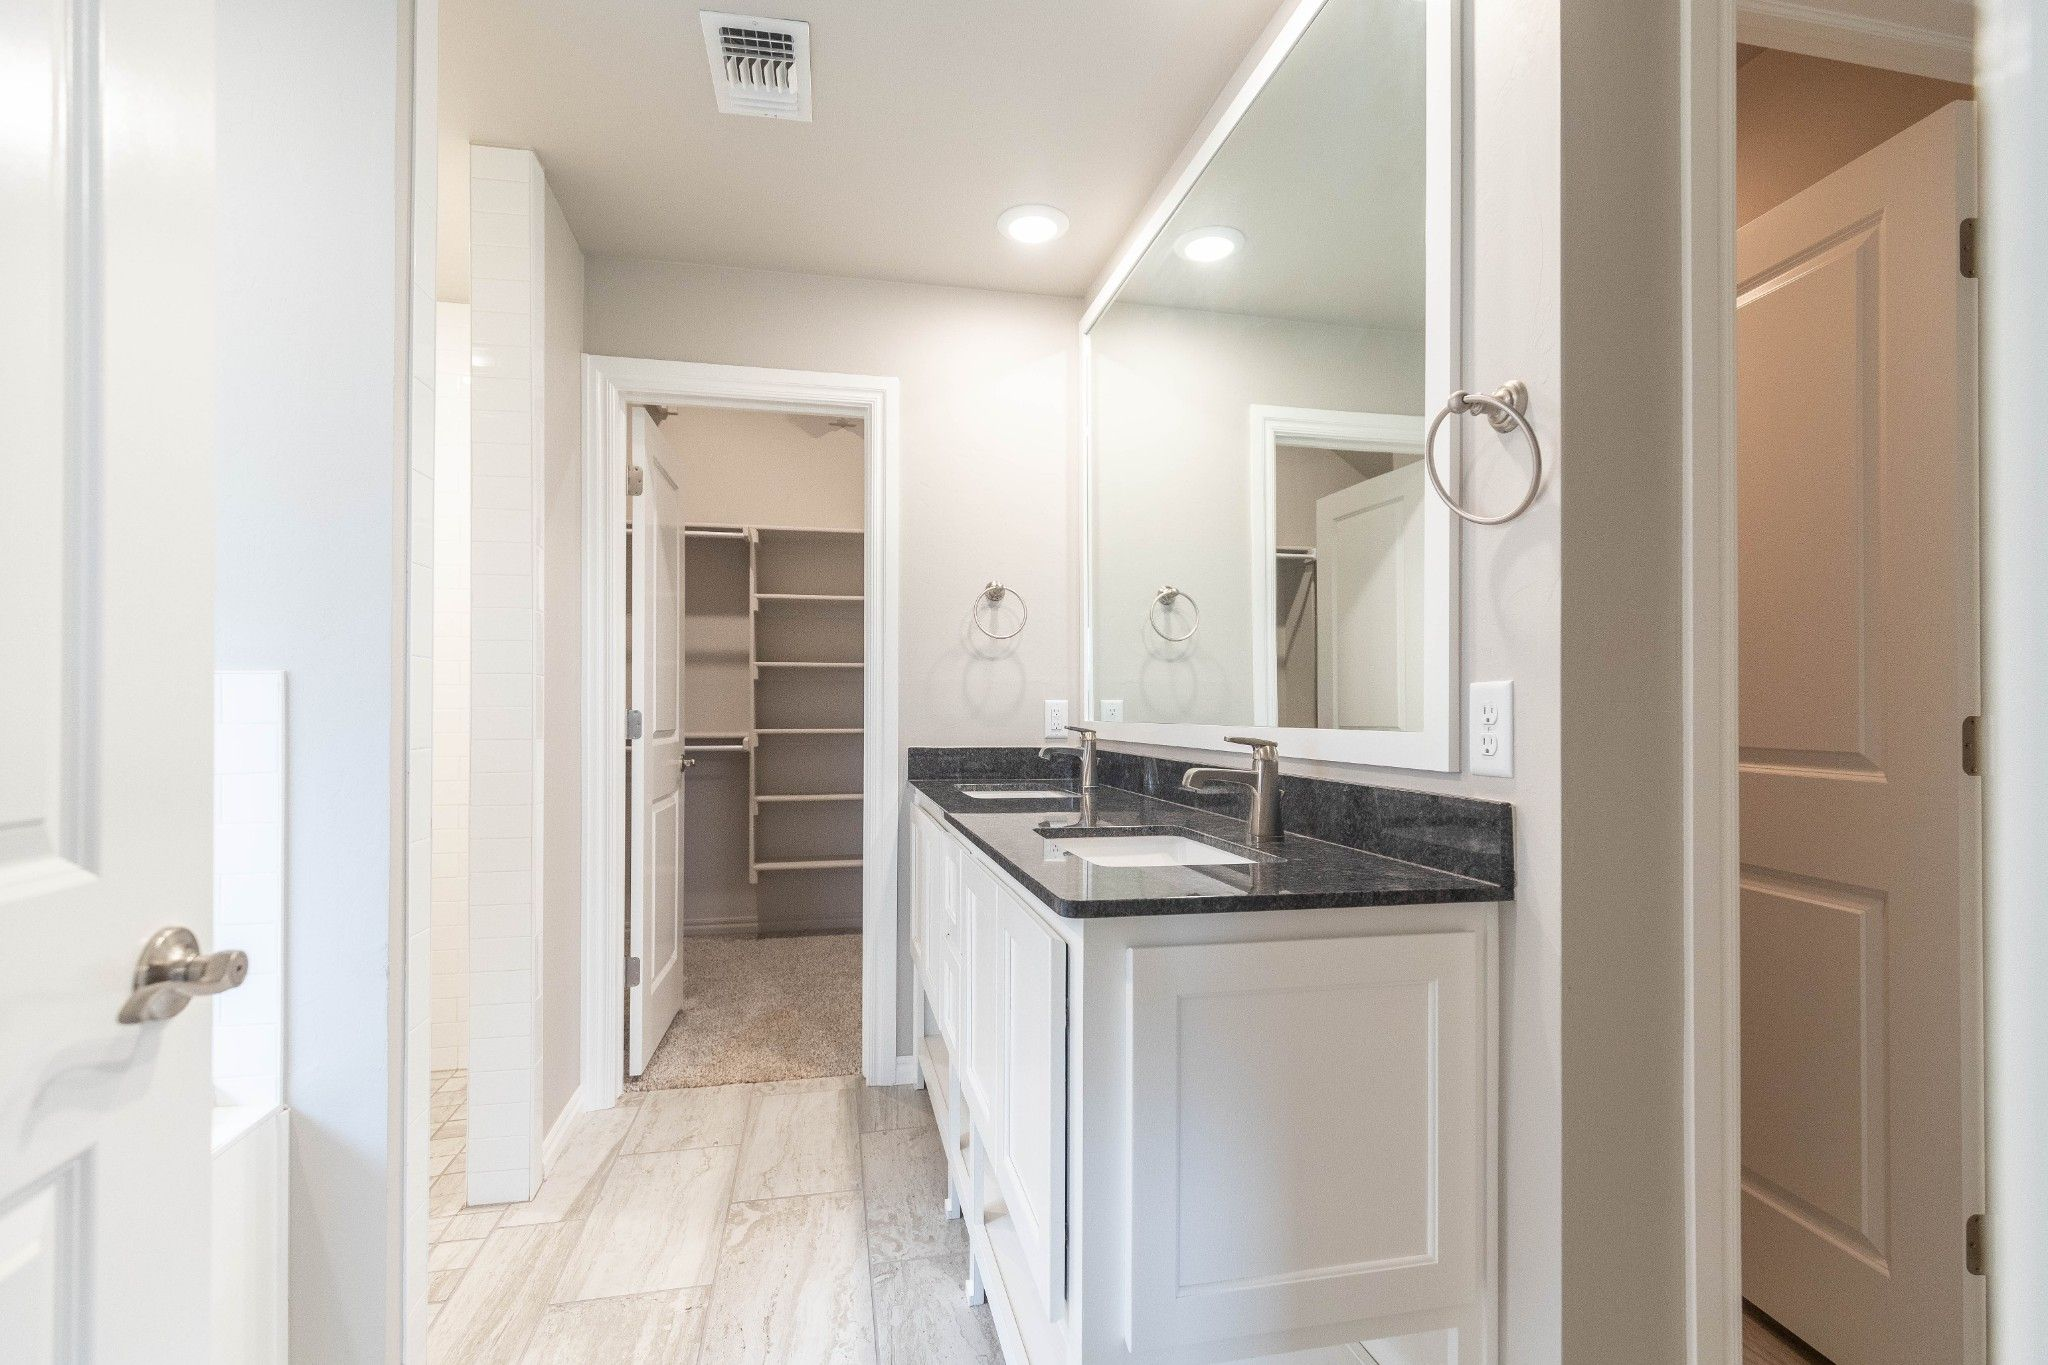 Bathroom featured in the Brinklee By Homes By Taber in Oklahoma City, OK